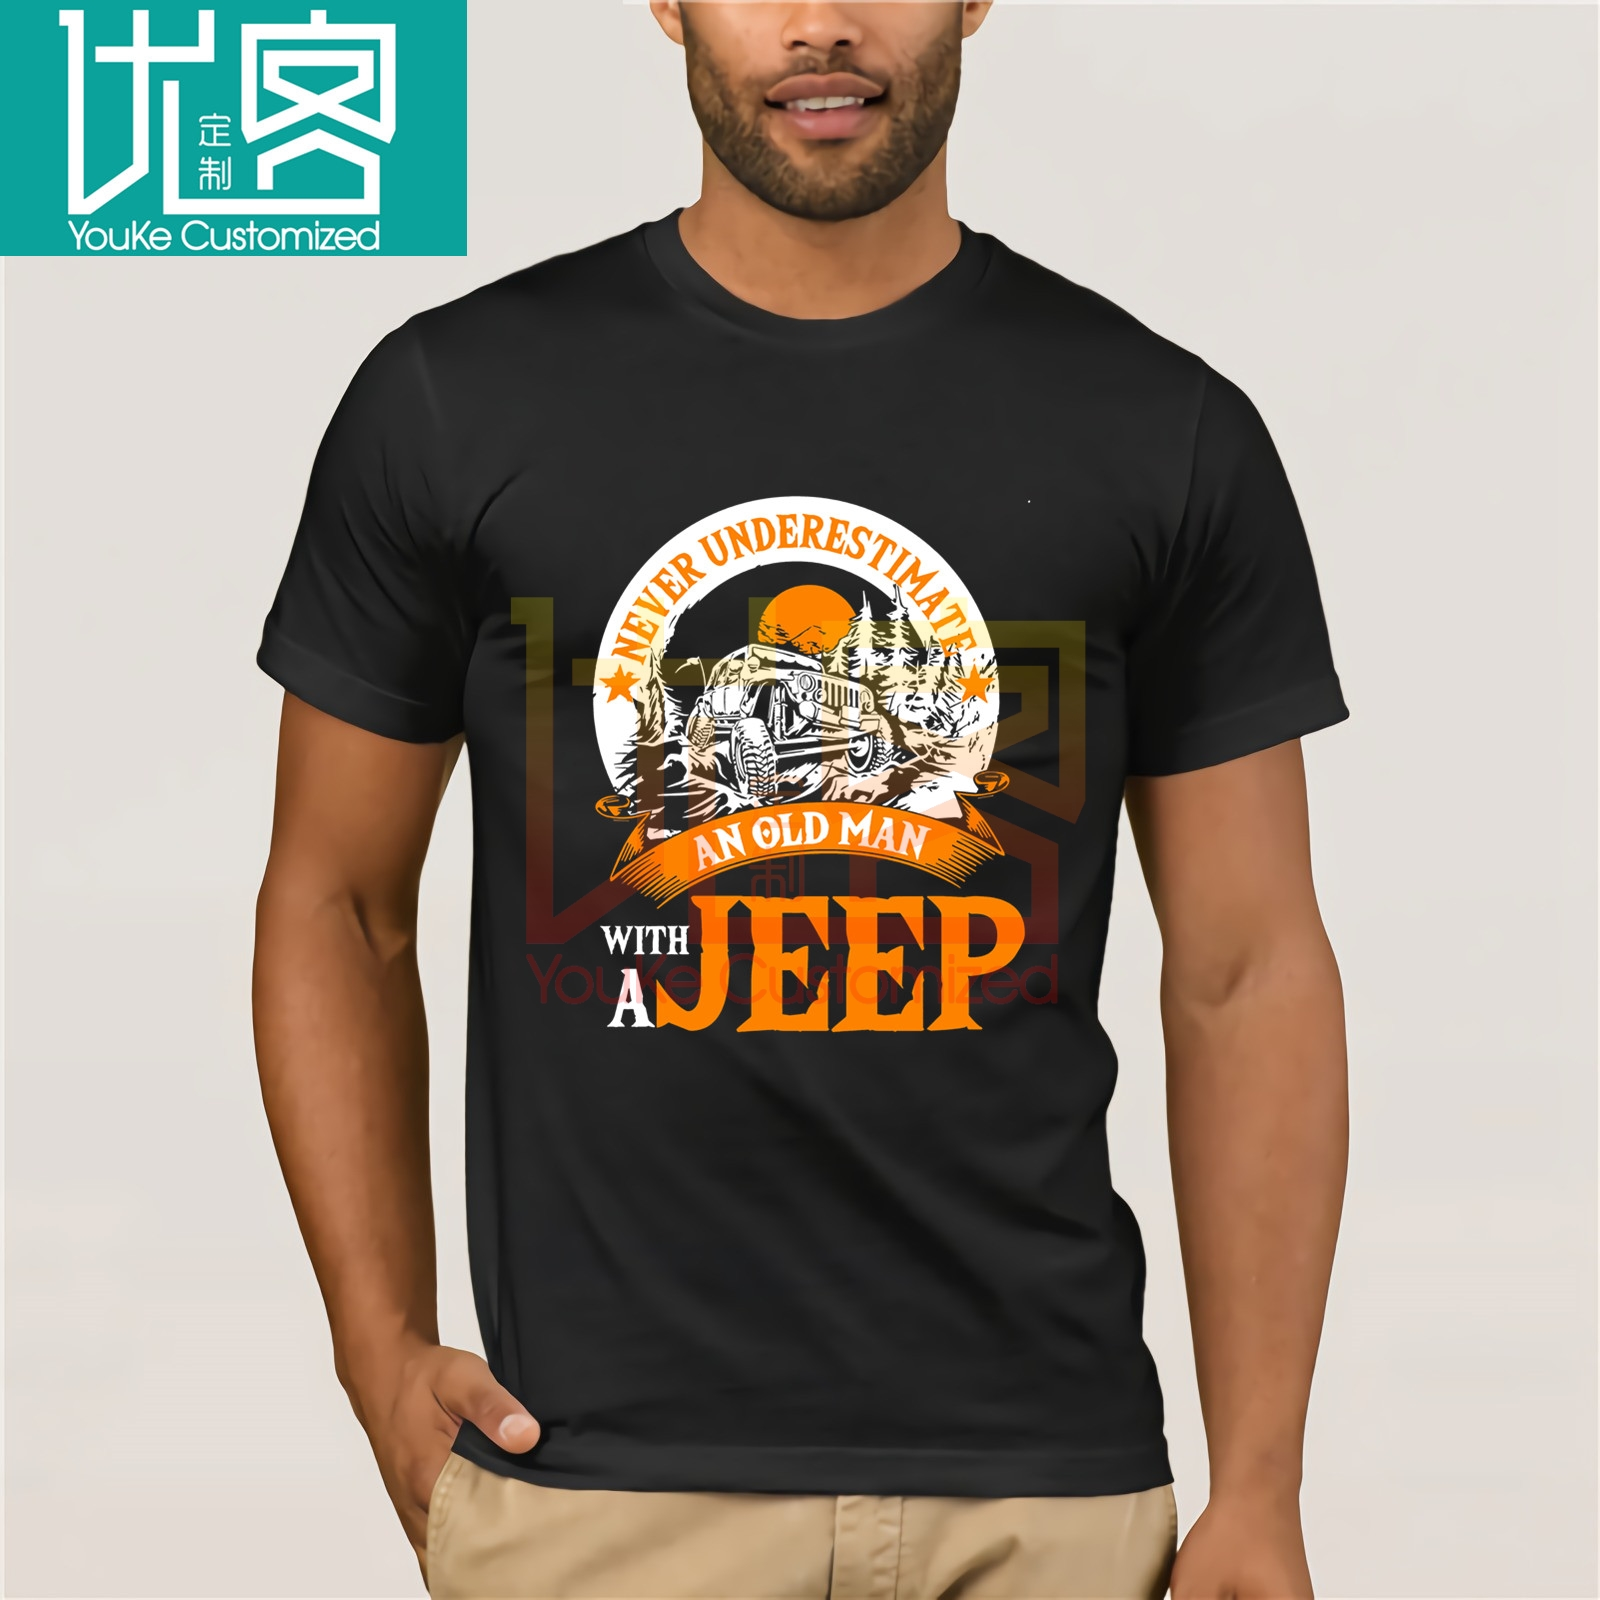 2020 Fashion Free Shipping Never Underestimate An Old Man With A Jeeps T Shirt Tee Shirt